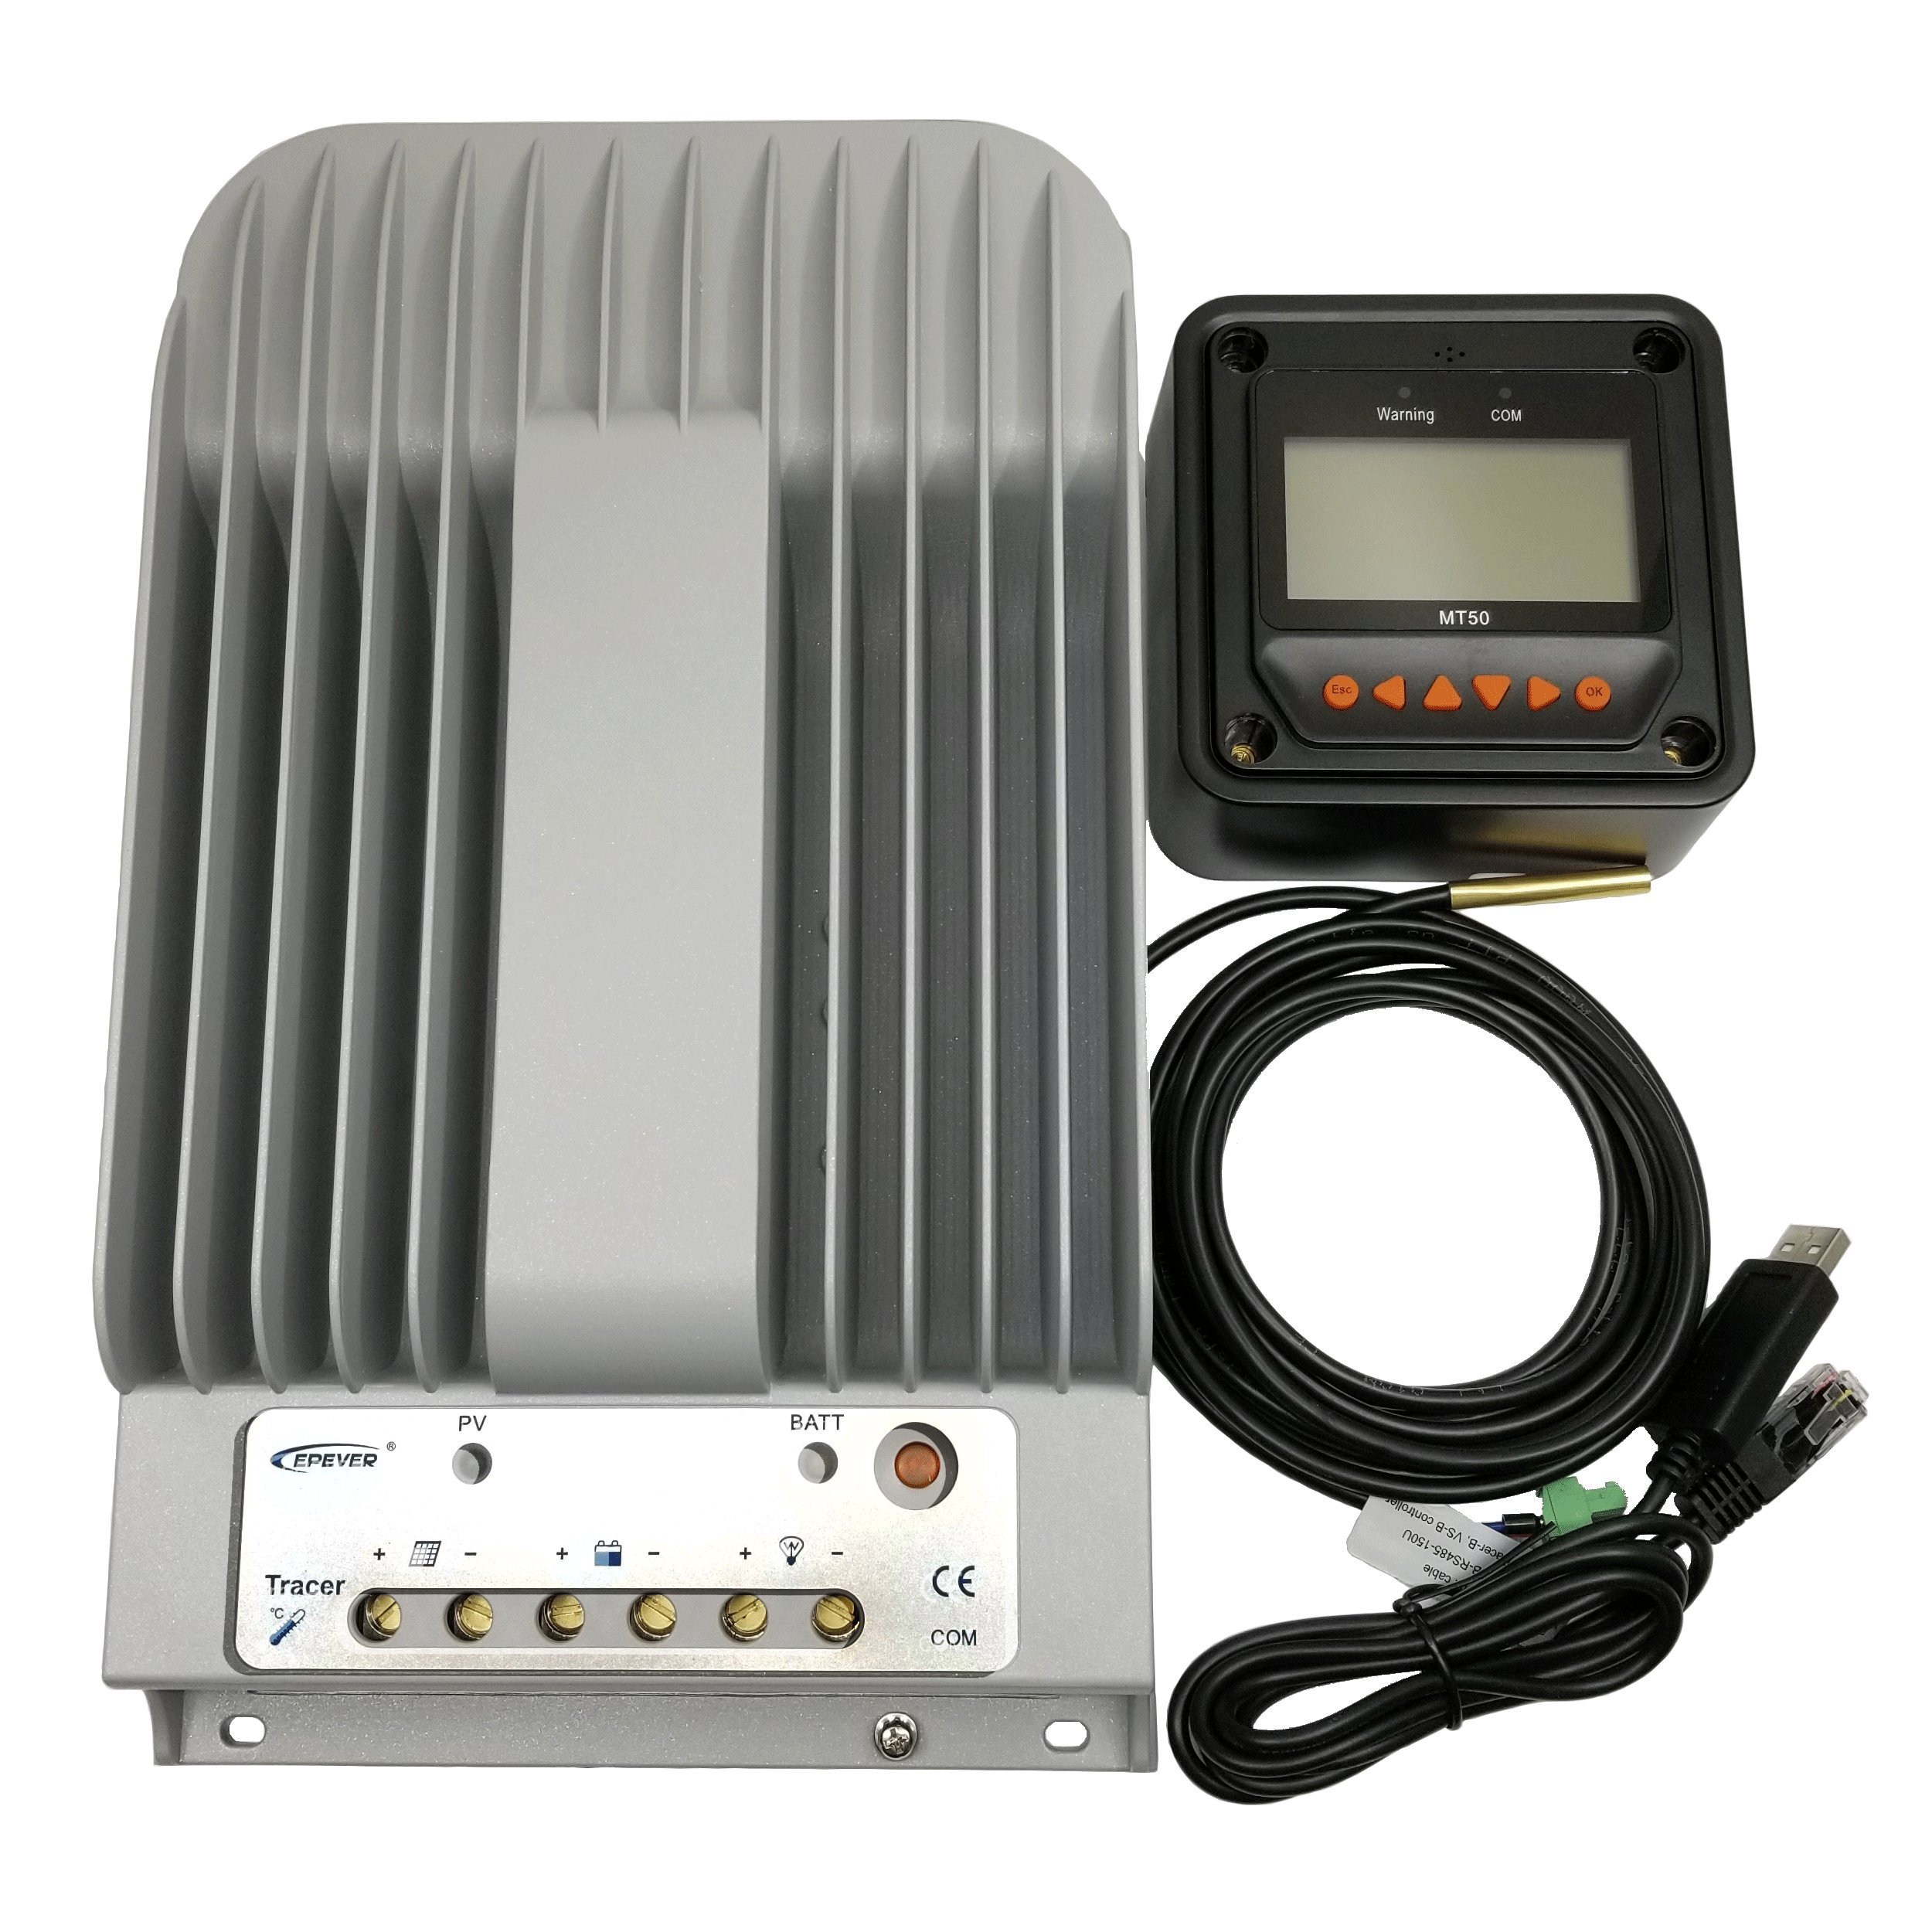 epever 40A MPPT Solar Charge Controller+MT50 Monitor+Temp.Sensor 4215bn Package